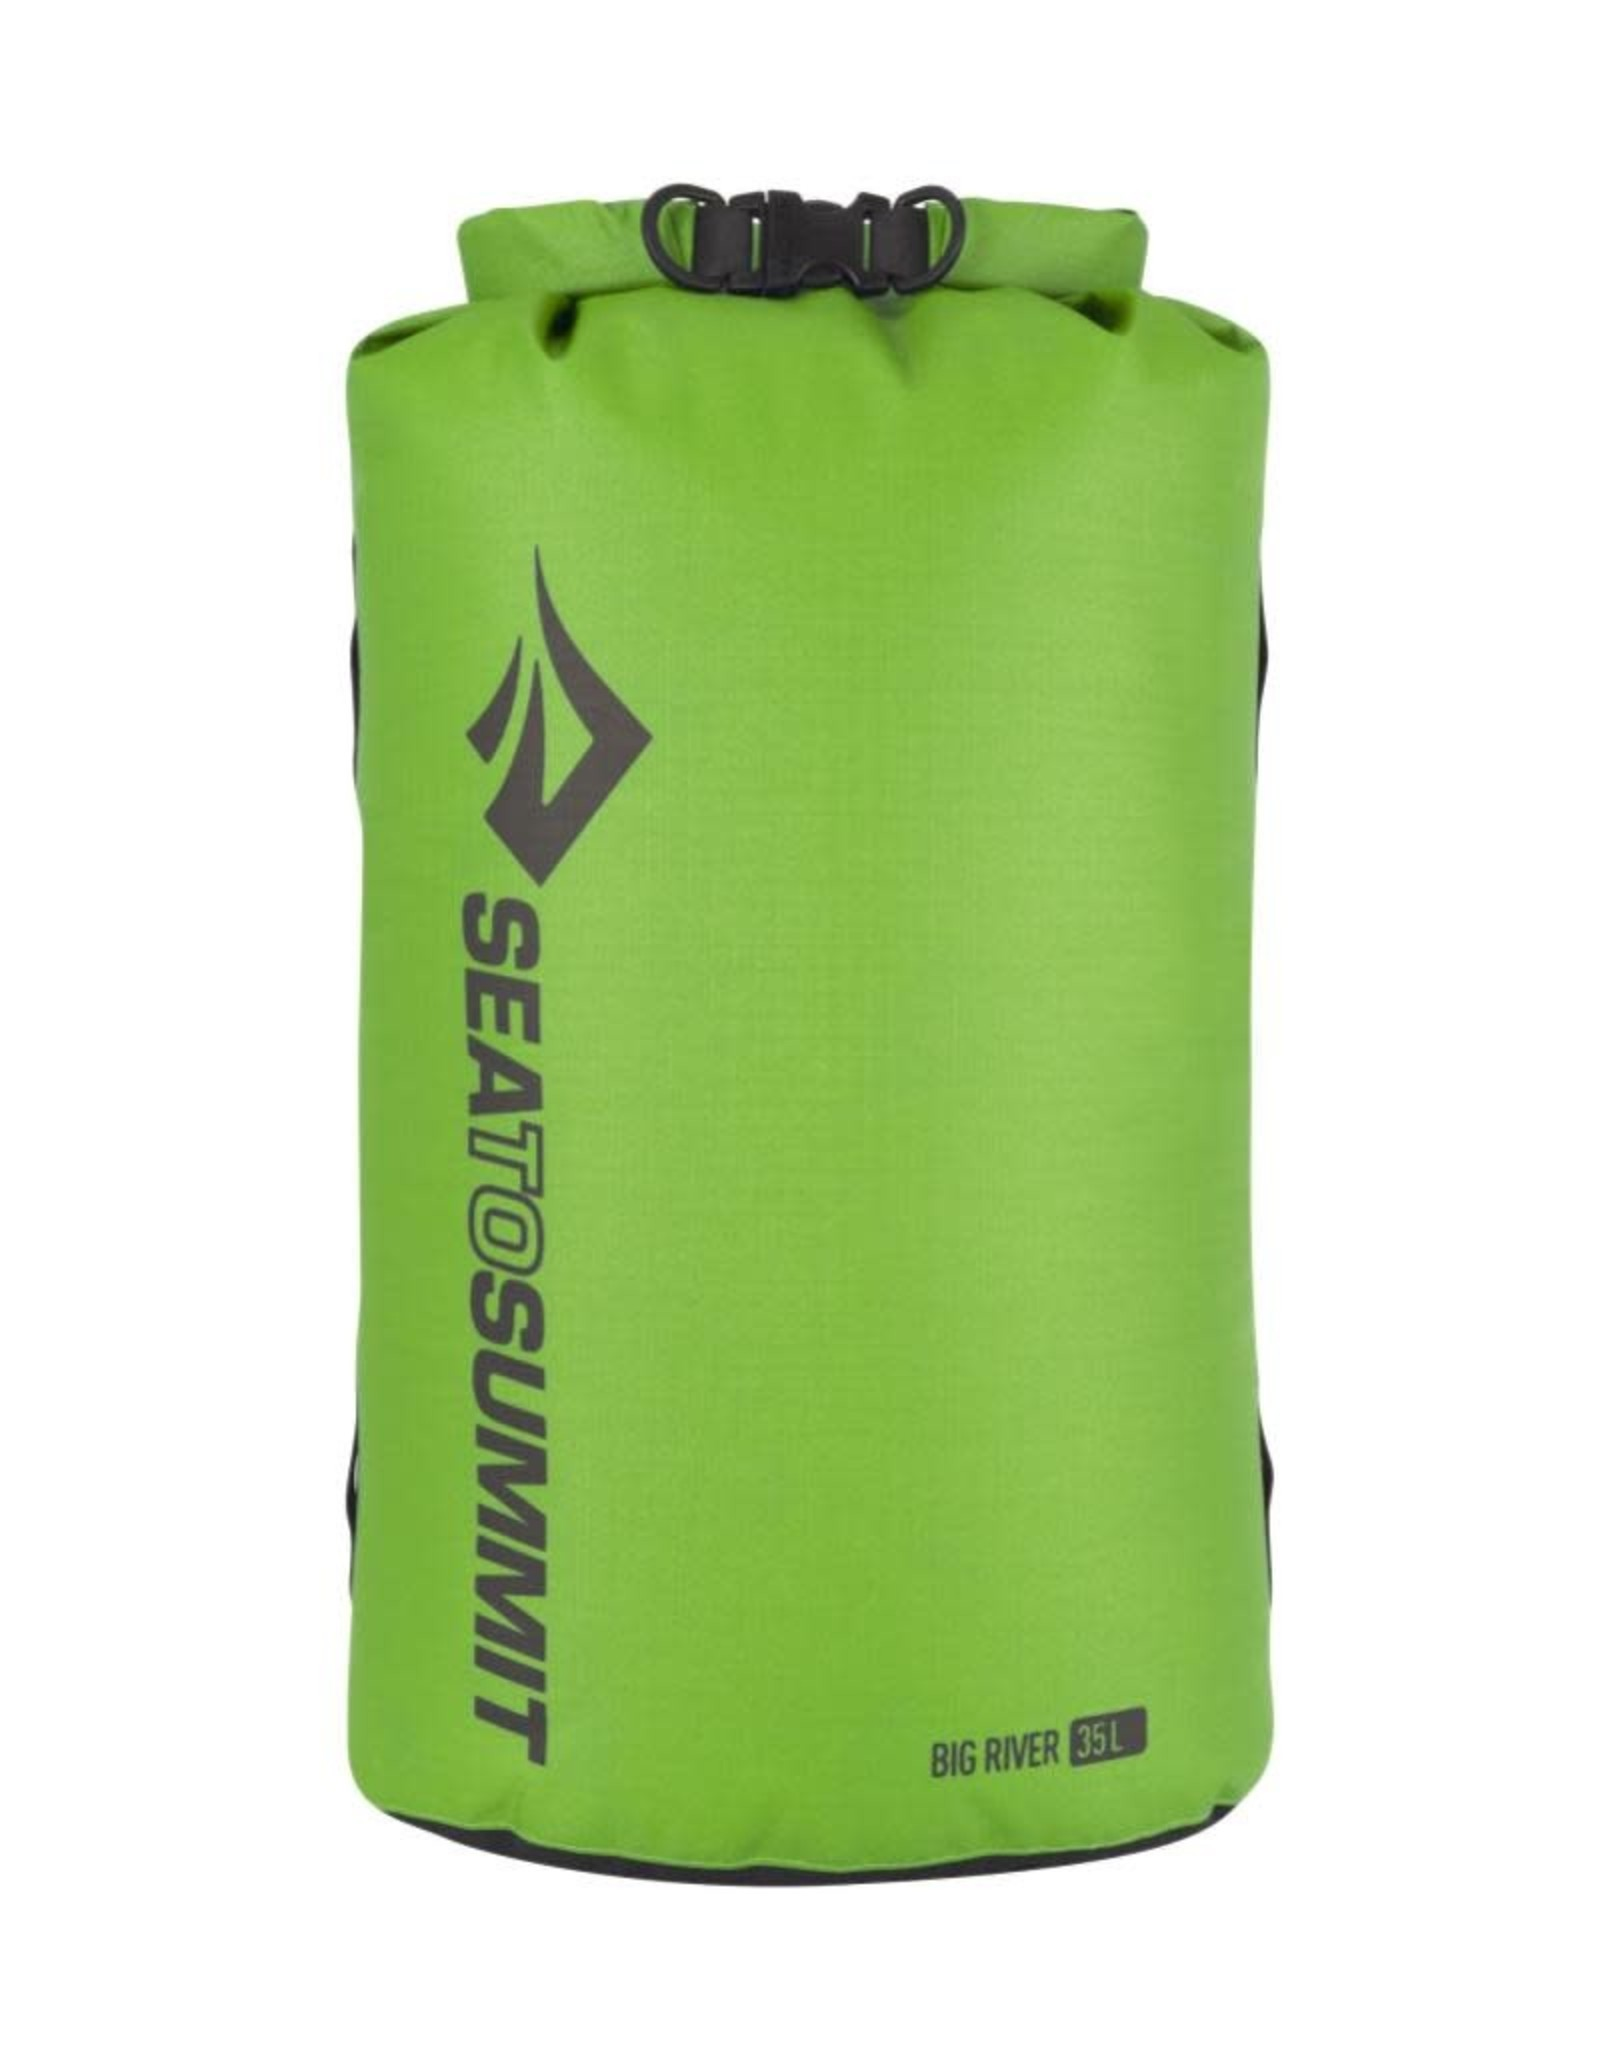 Big River Dry Bag 35L